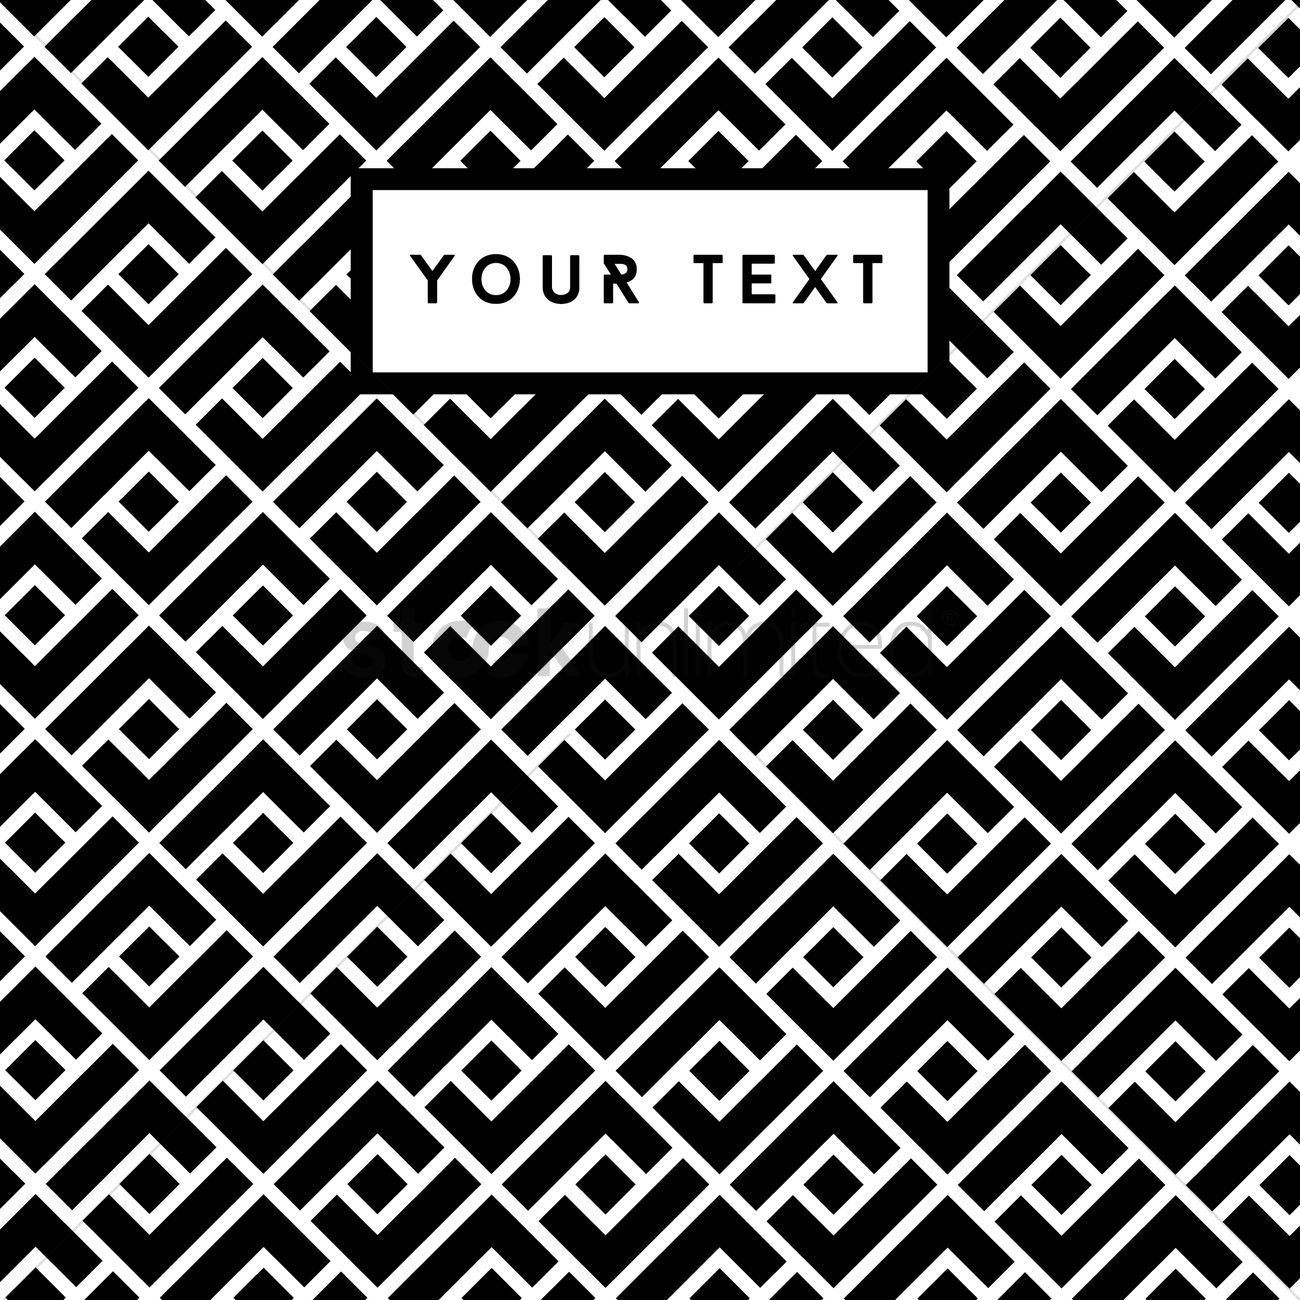 Free Abstract Black And White Background Vector Image